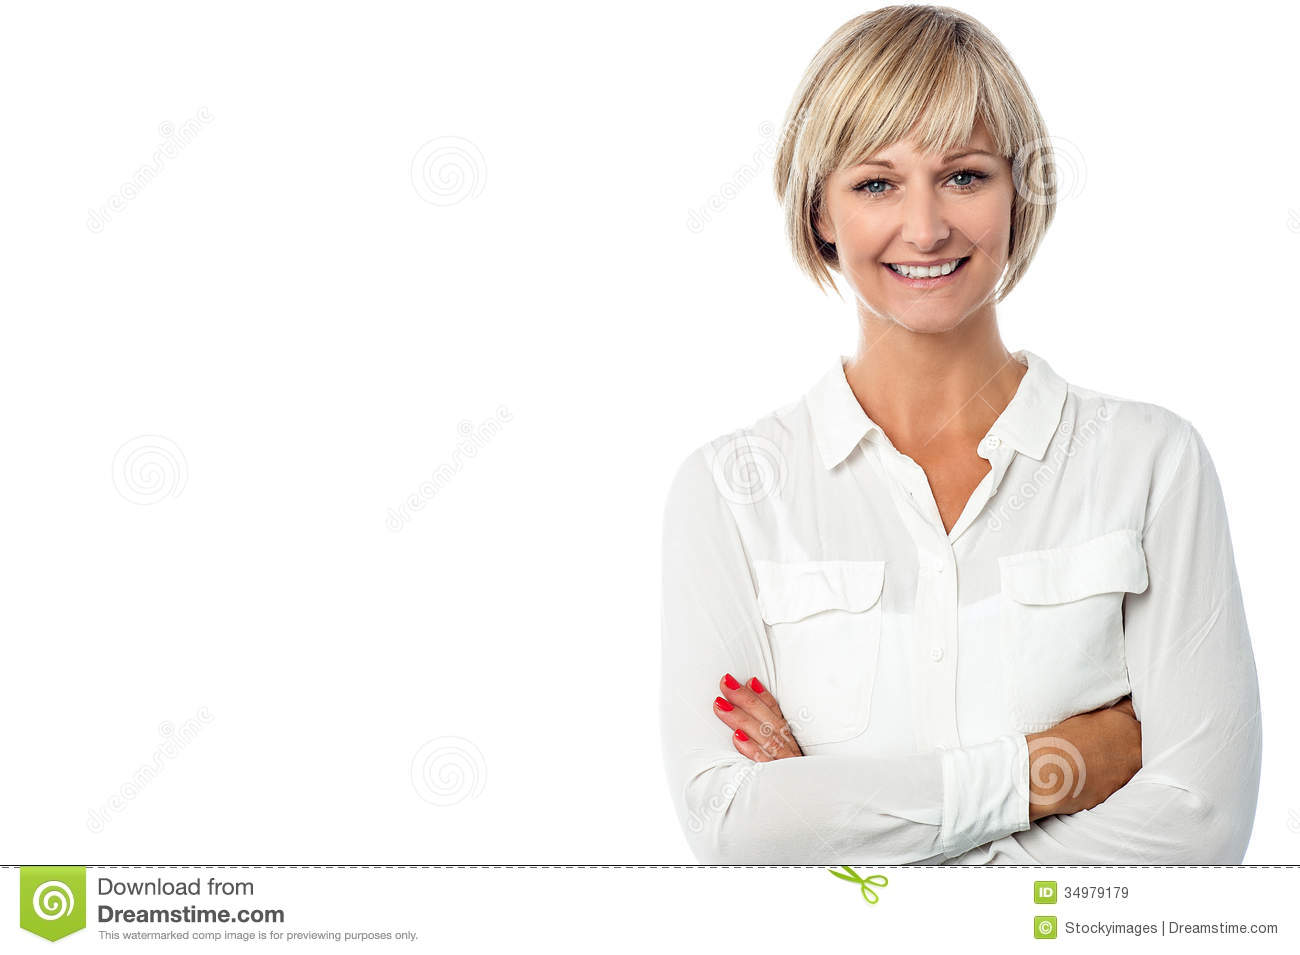 Smiling middle aged lady, arms crossed.